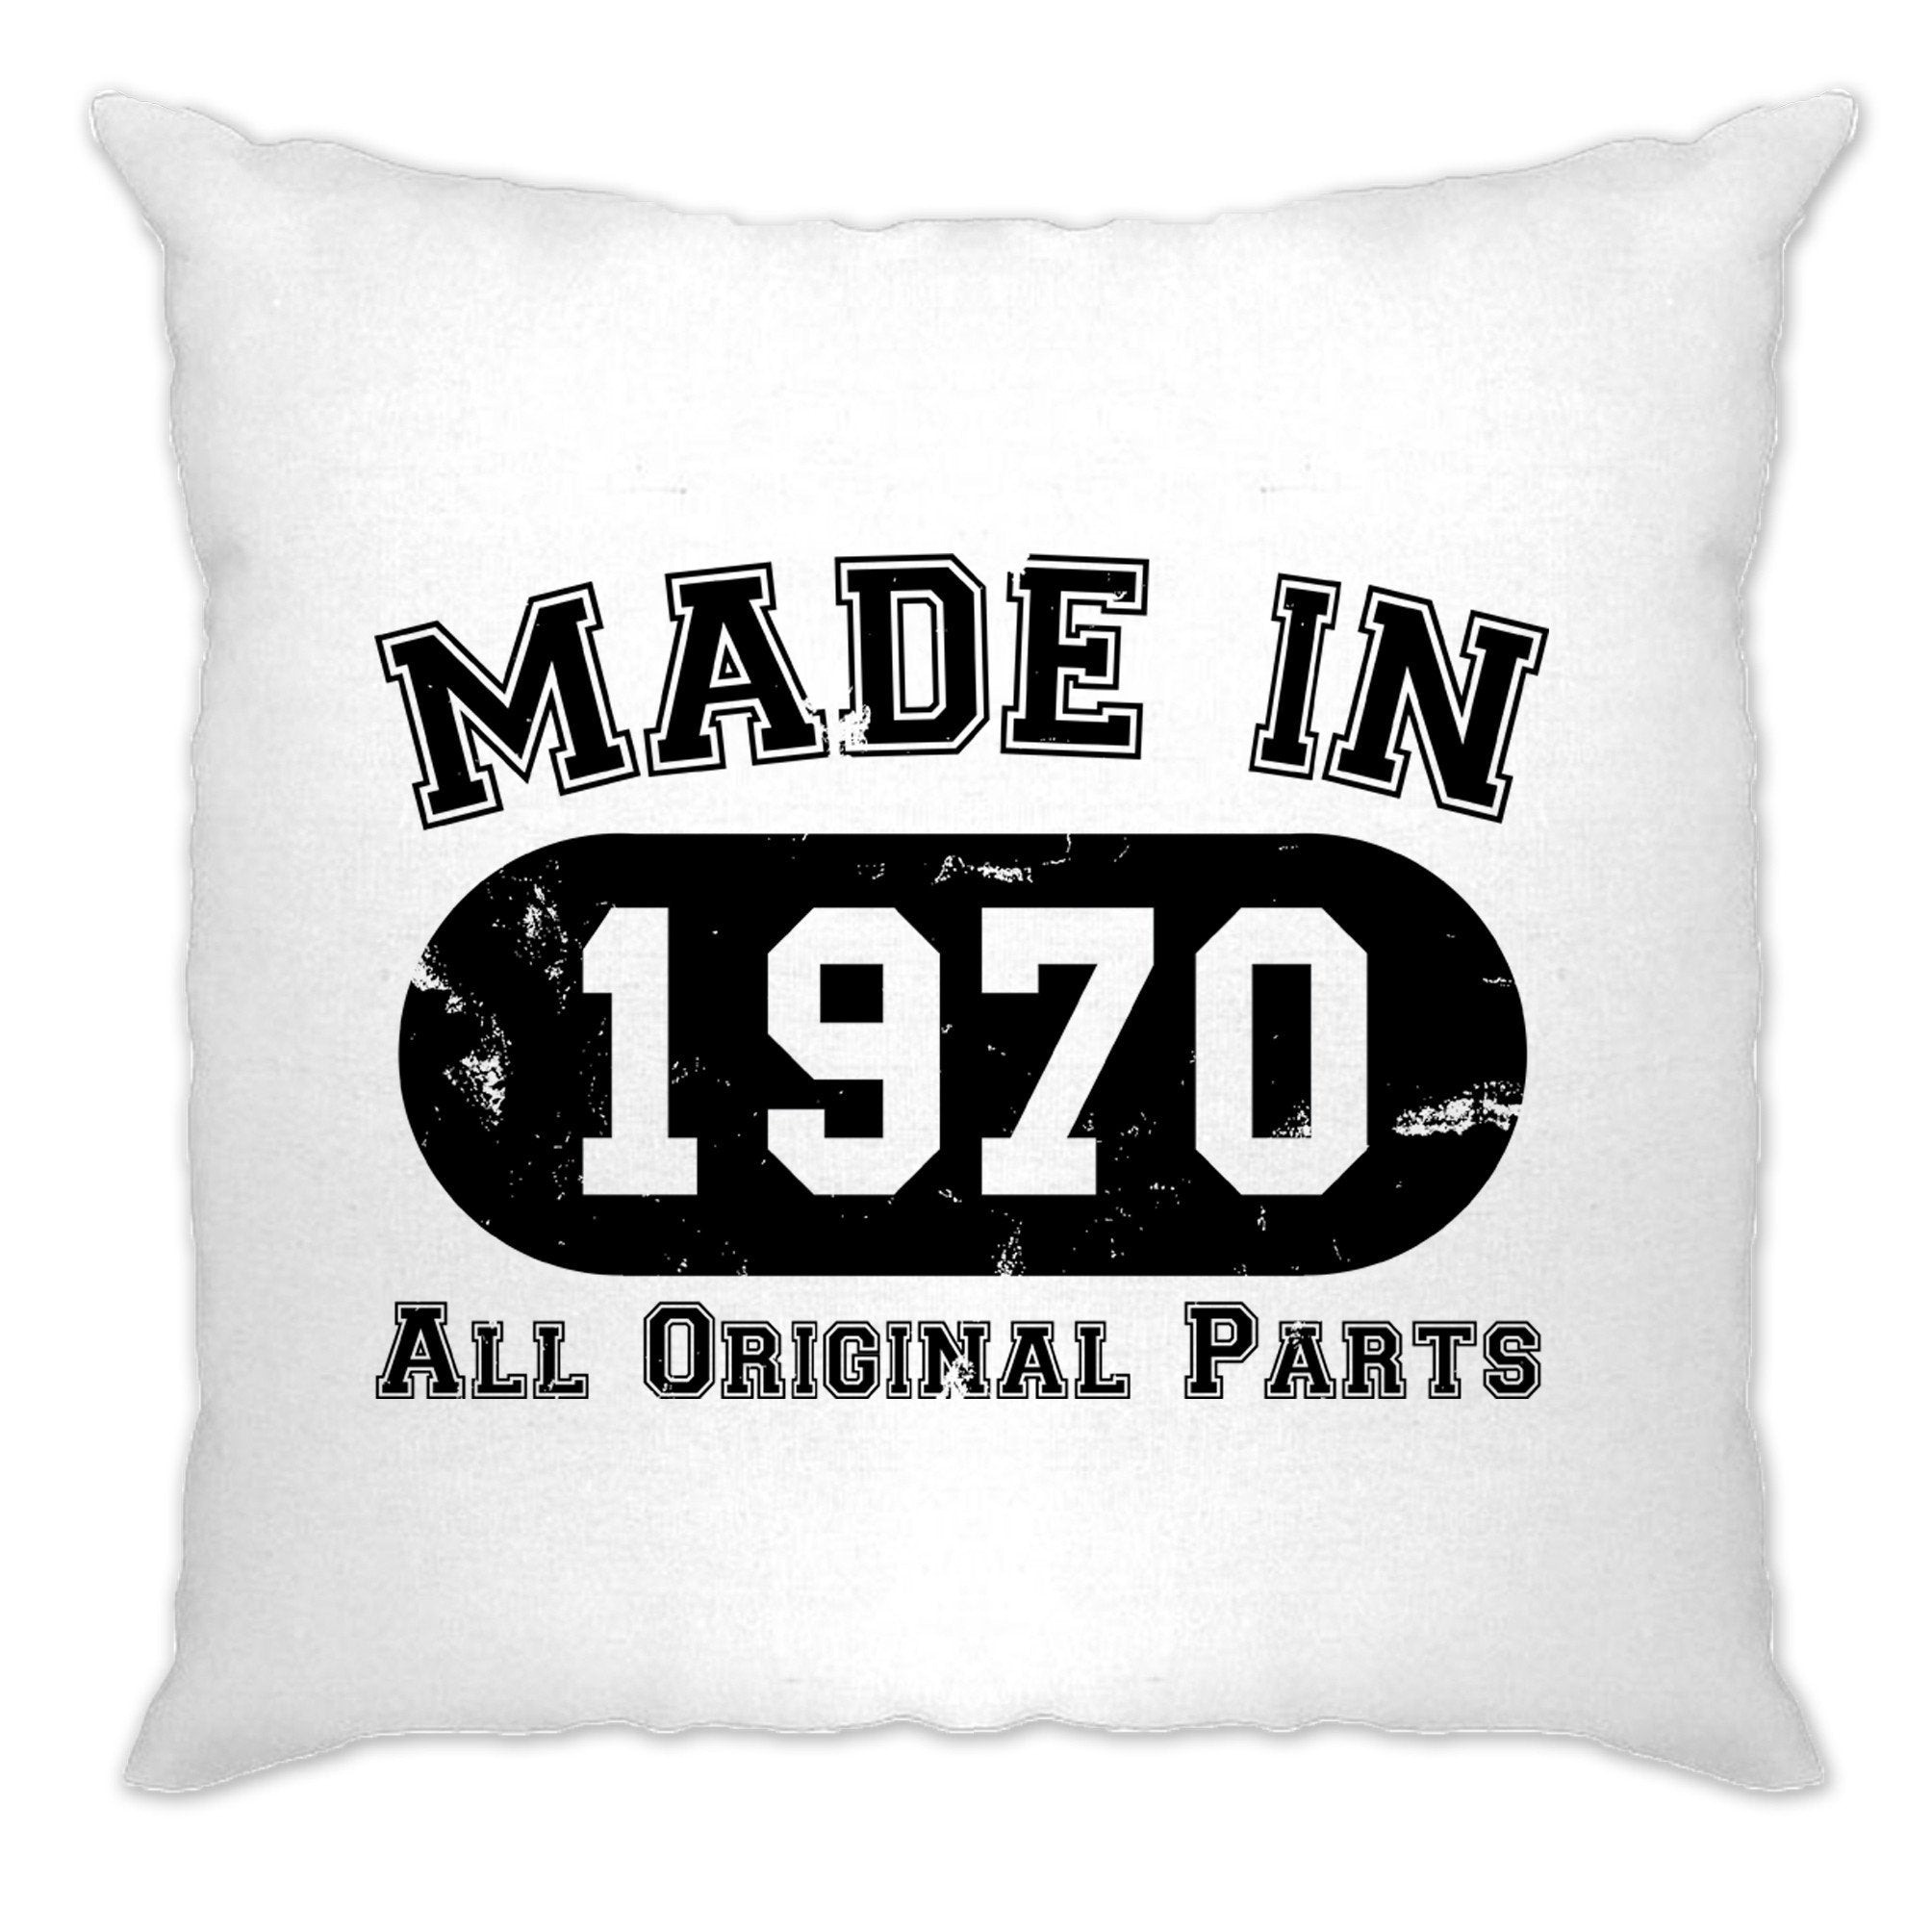 Made in 1970 All Original Parts Cushion Cover [Distressed]